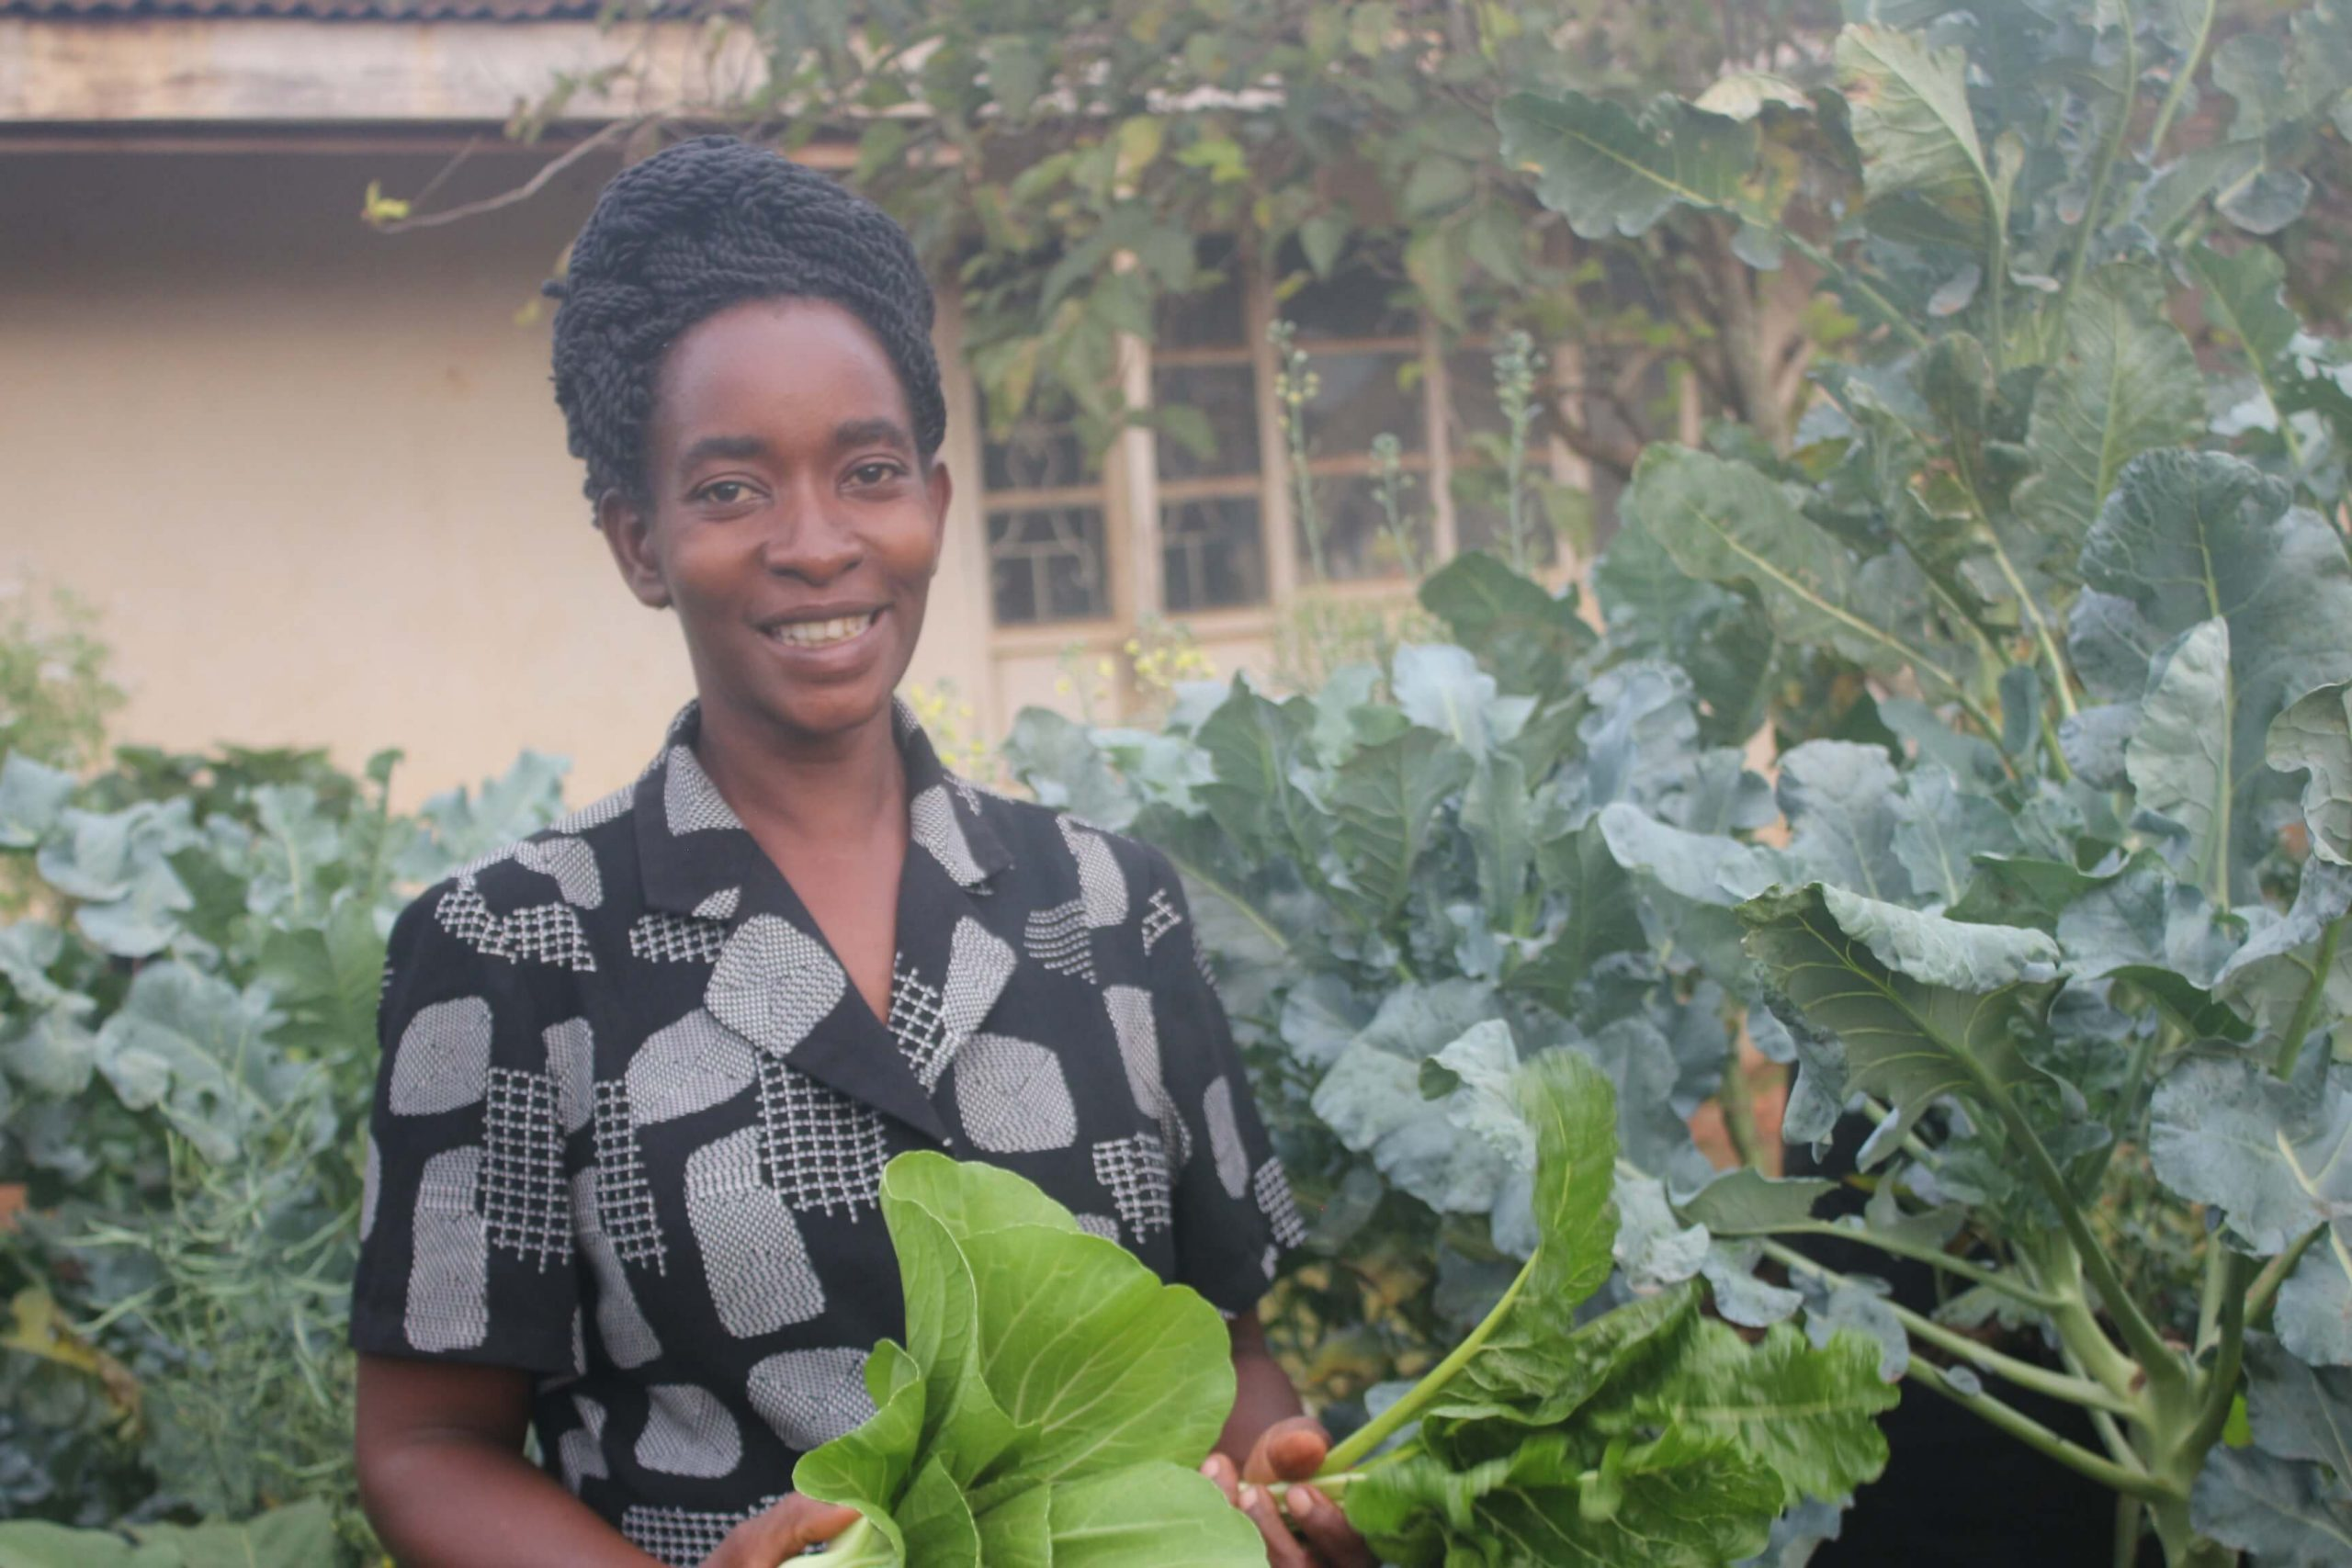 INNOVATIVE BACKYARD GARDENING BOOSTS BENEFICIARIES' INCOME DURING PANDEMIC.